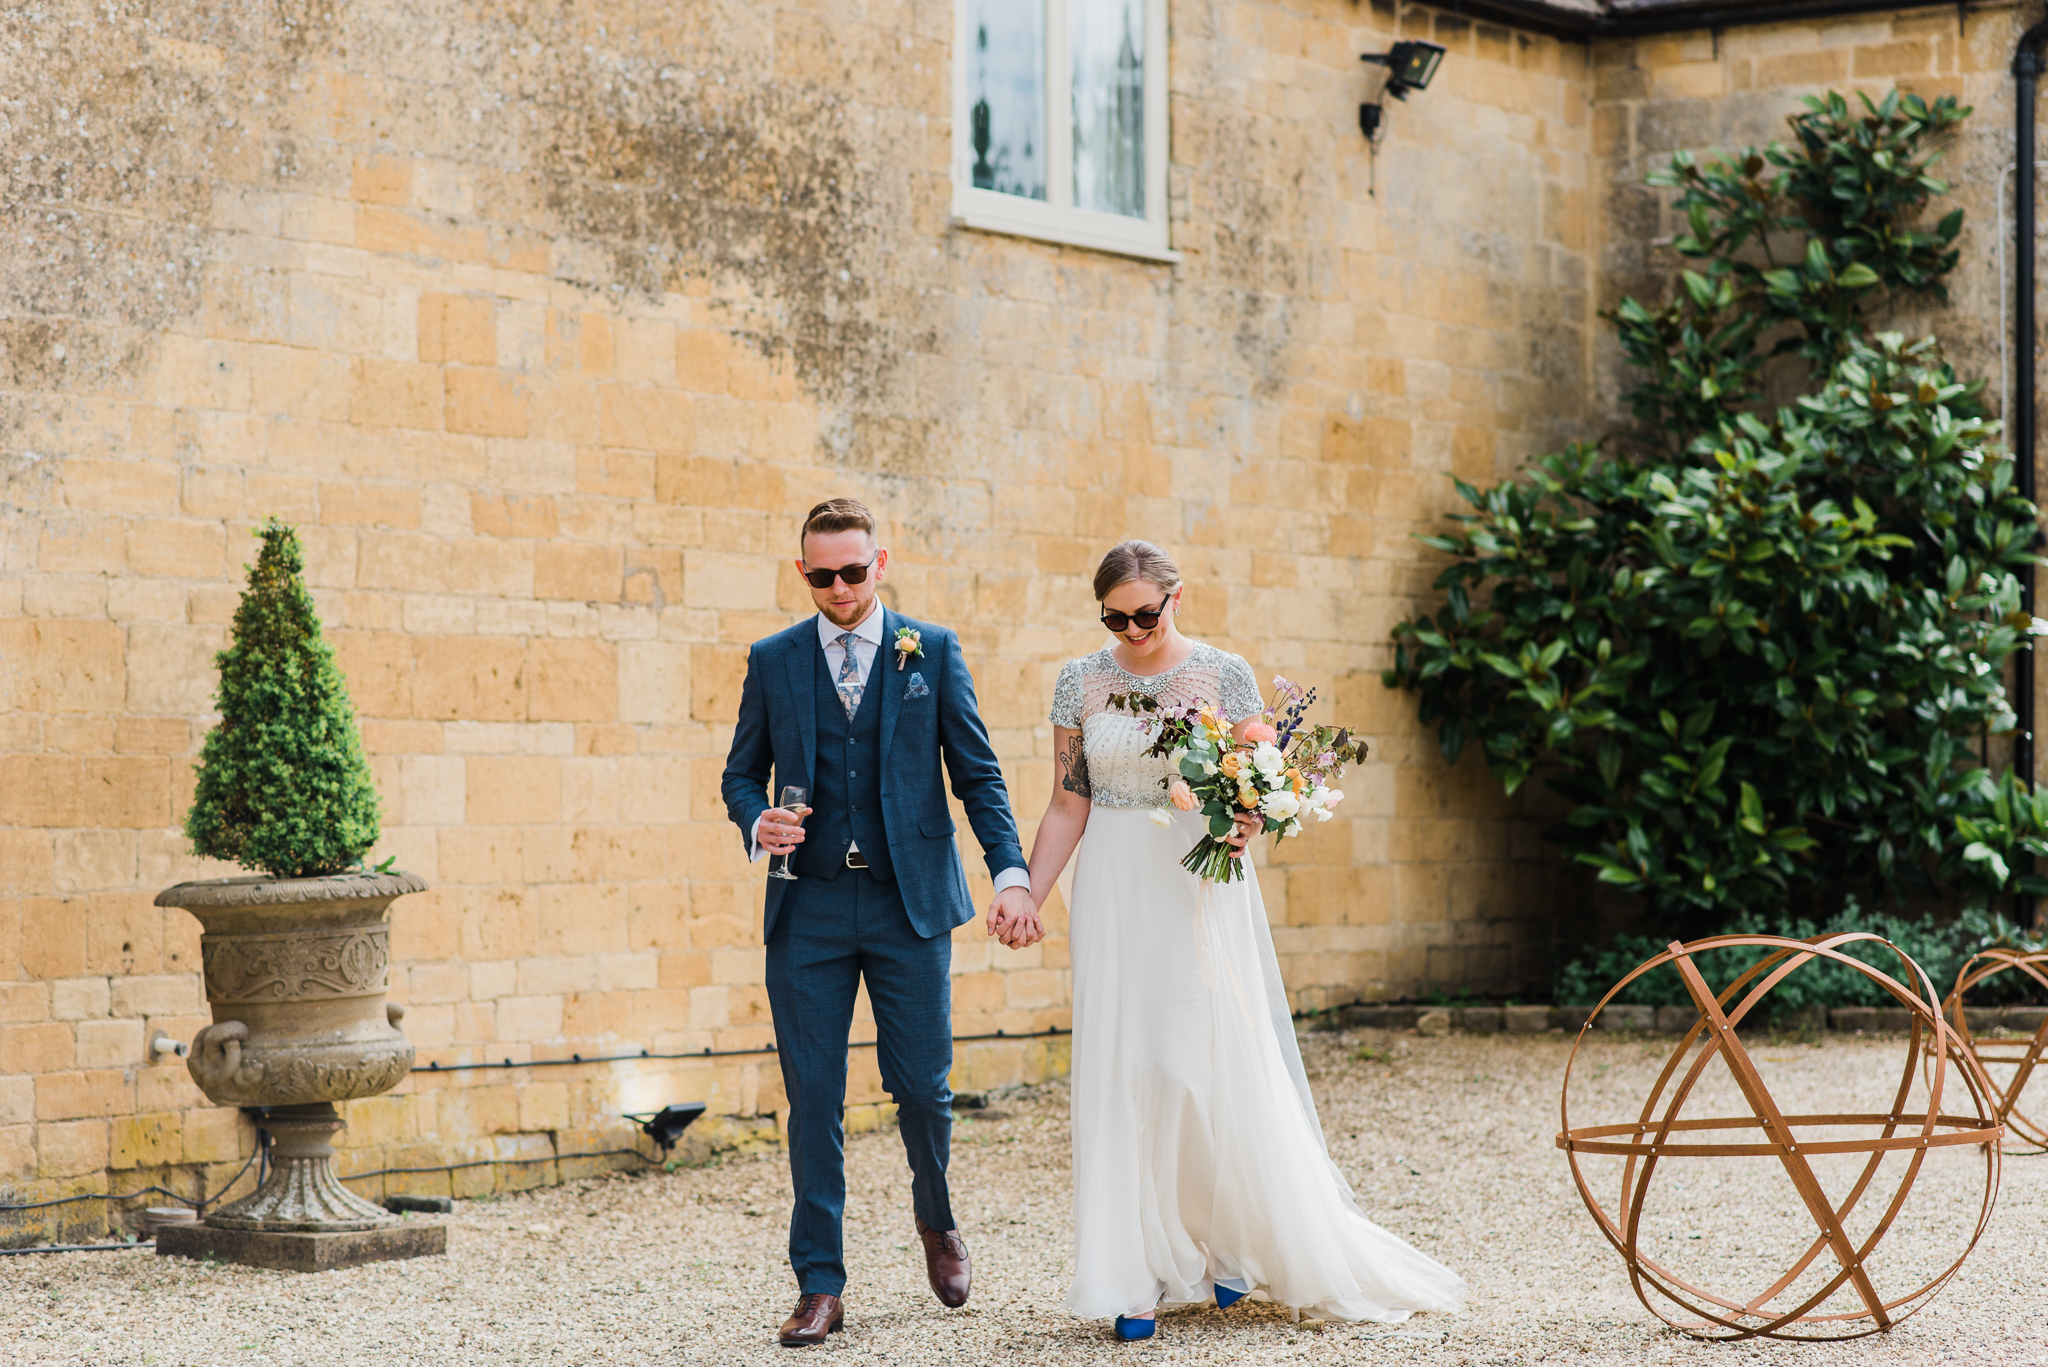 Bride and groom walking together at Lapstone barn